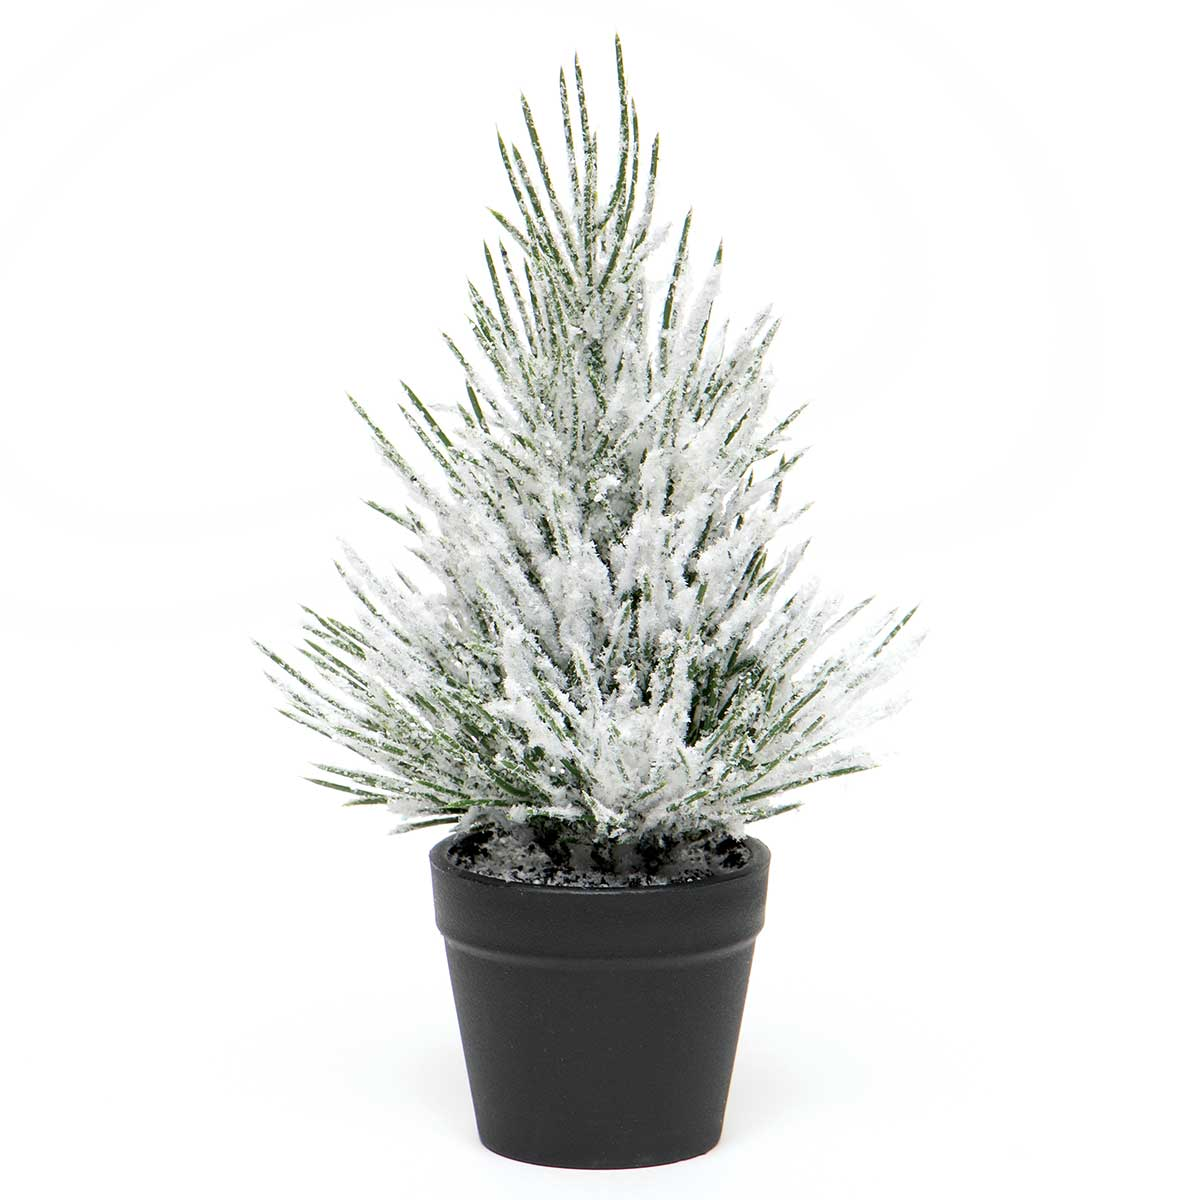 SCOTCH PINE MINI TREE GREEN WITH SNOW AND GLITTER IN